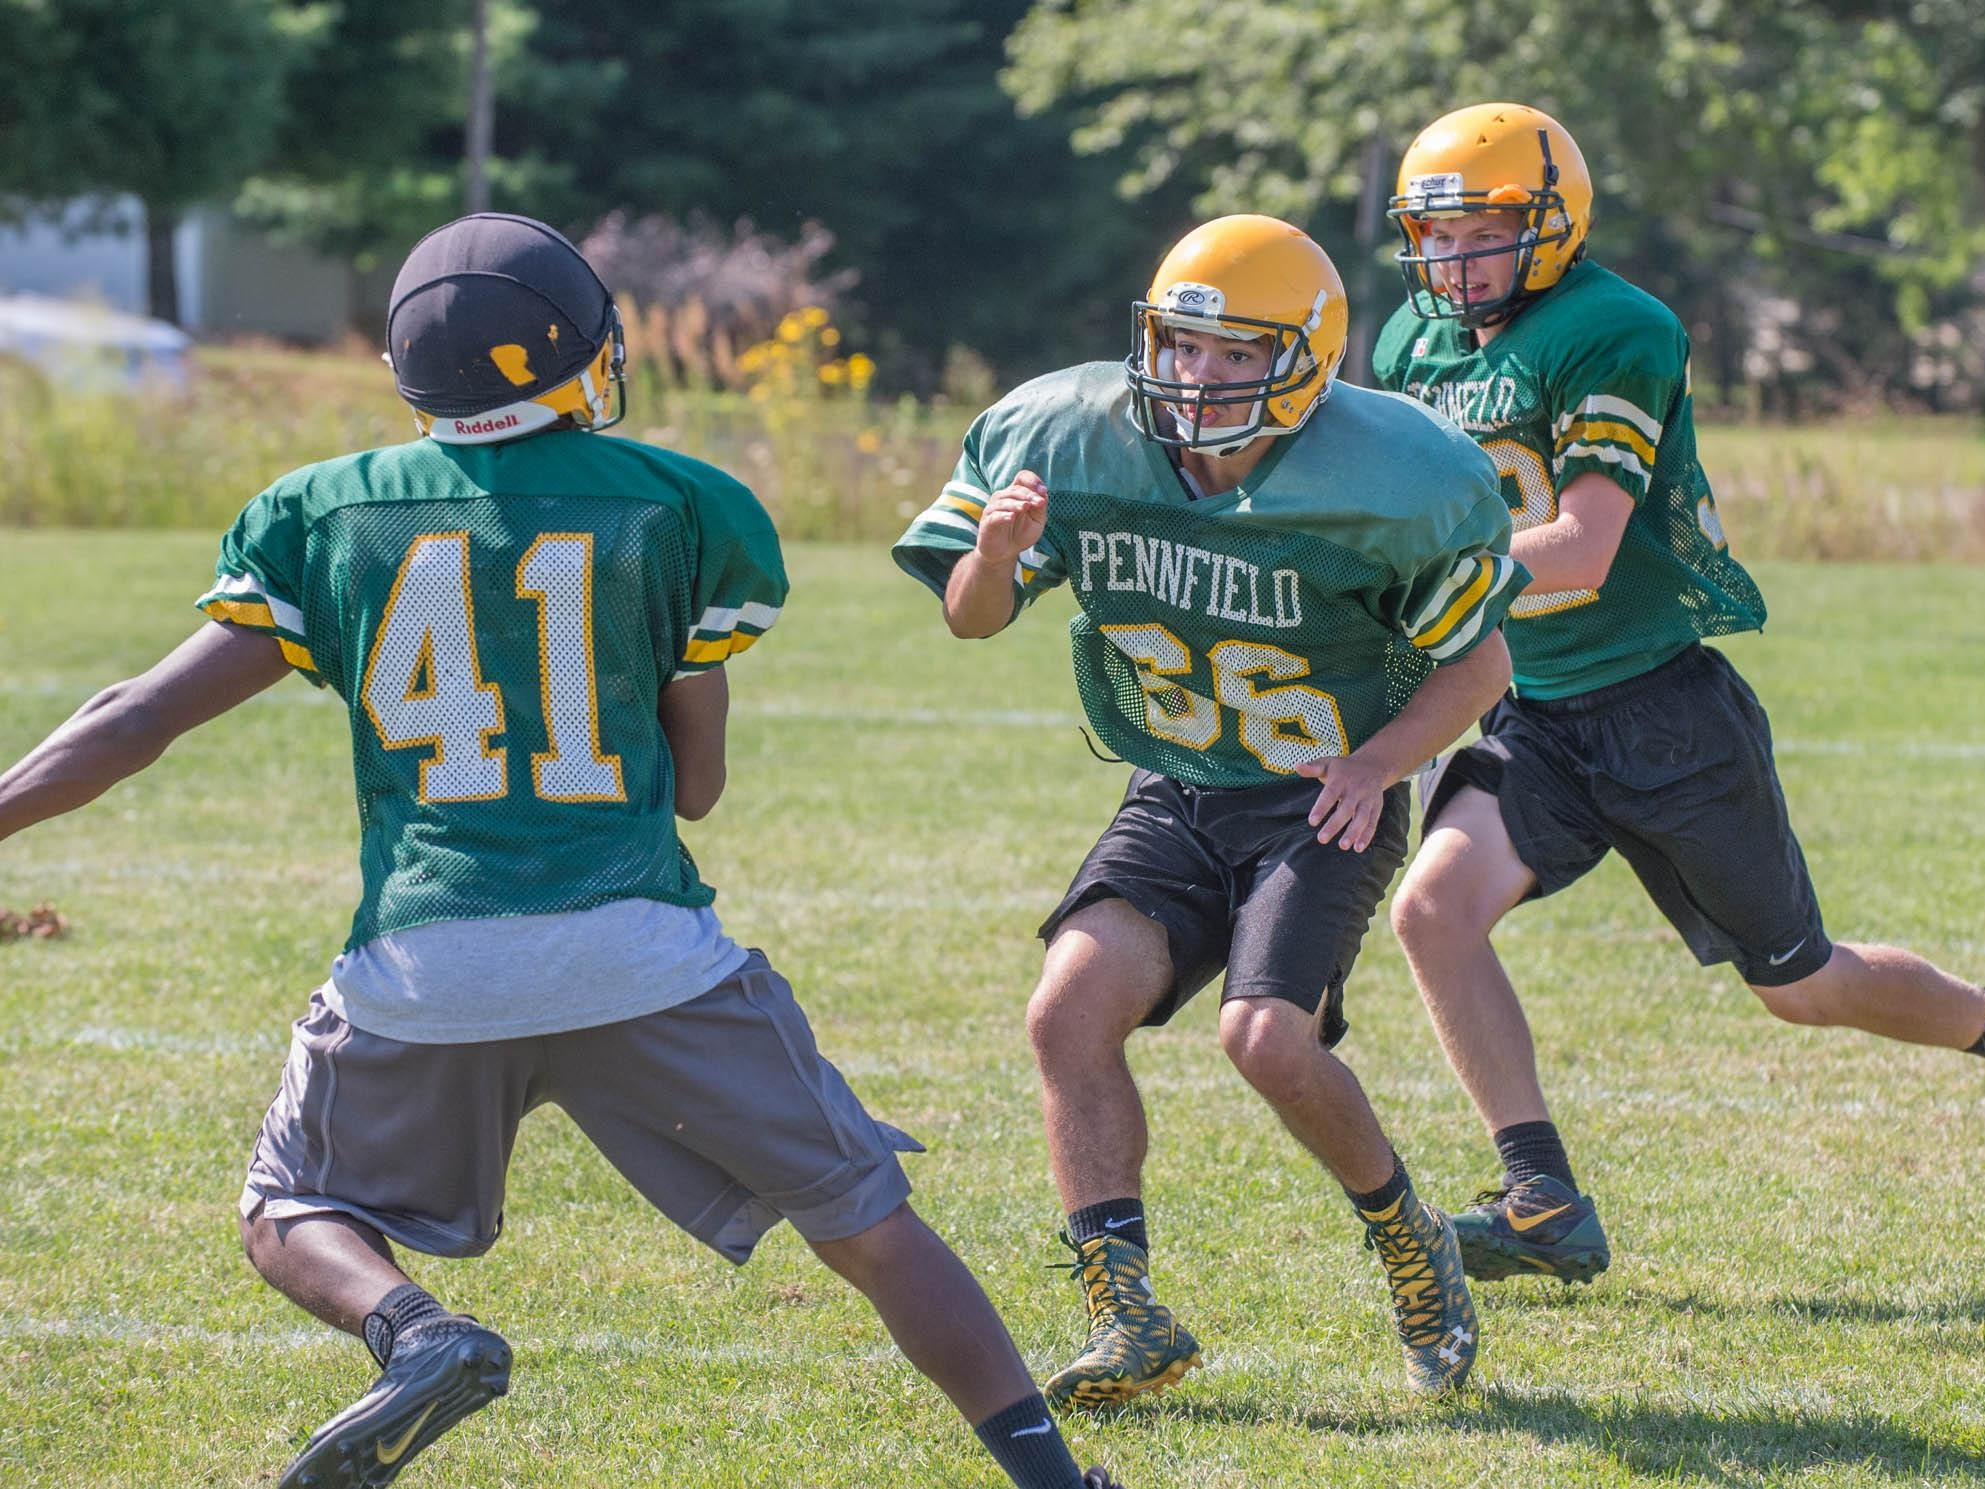 First day of practice with full pad for Pennfield High School football team.